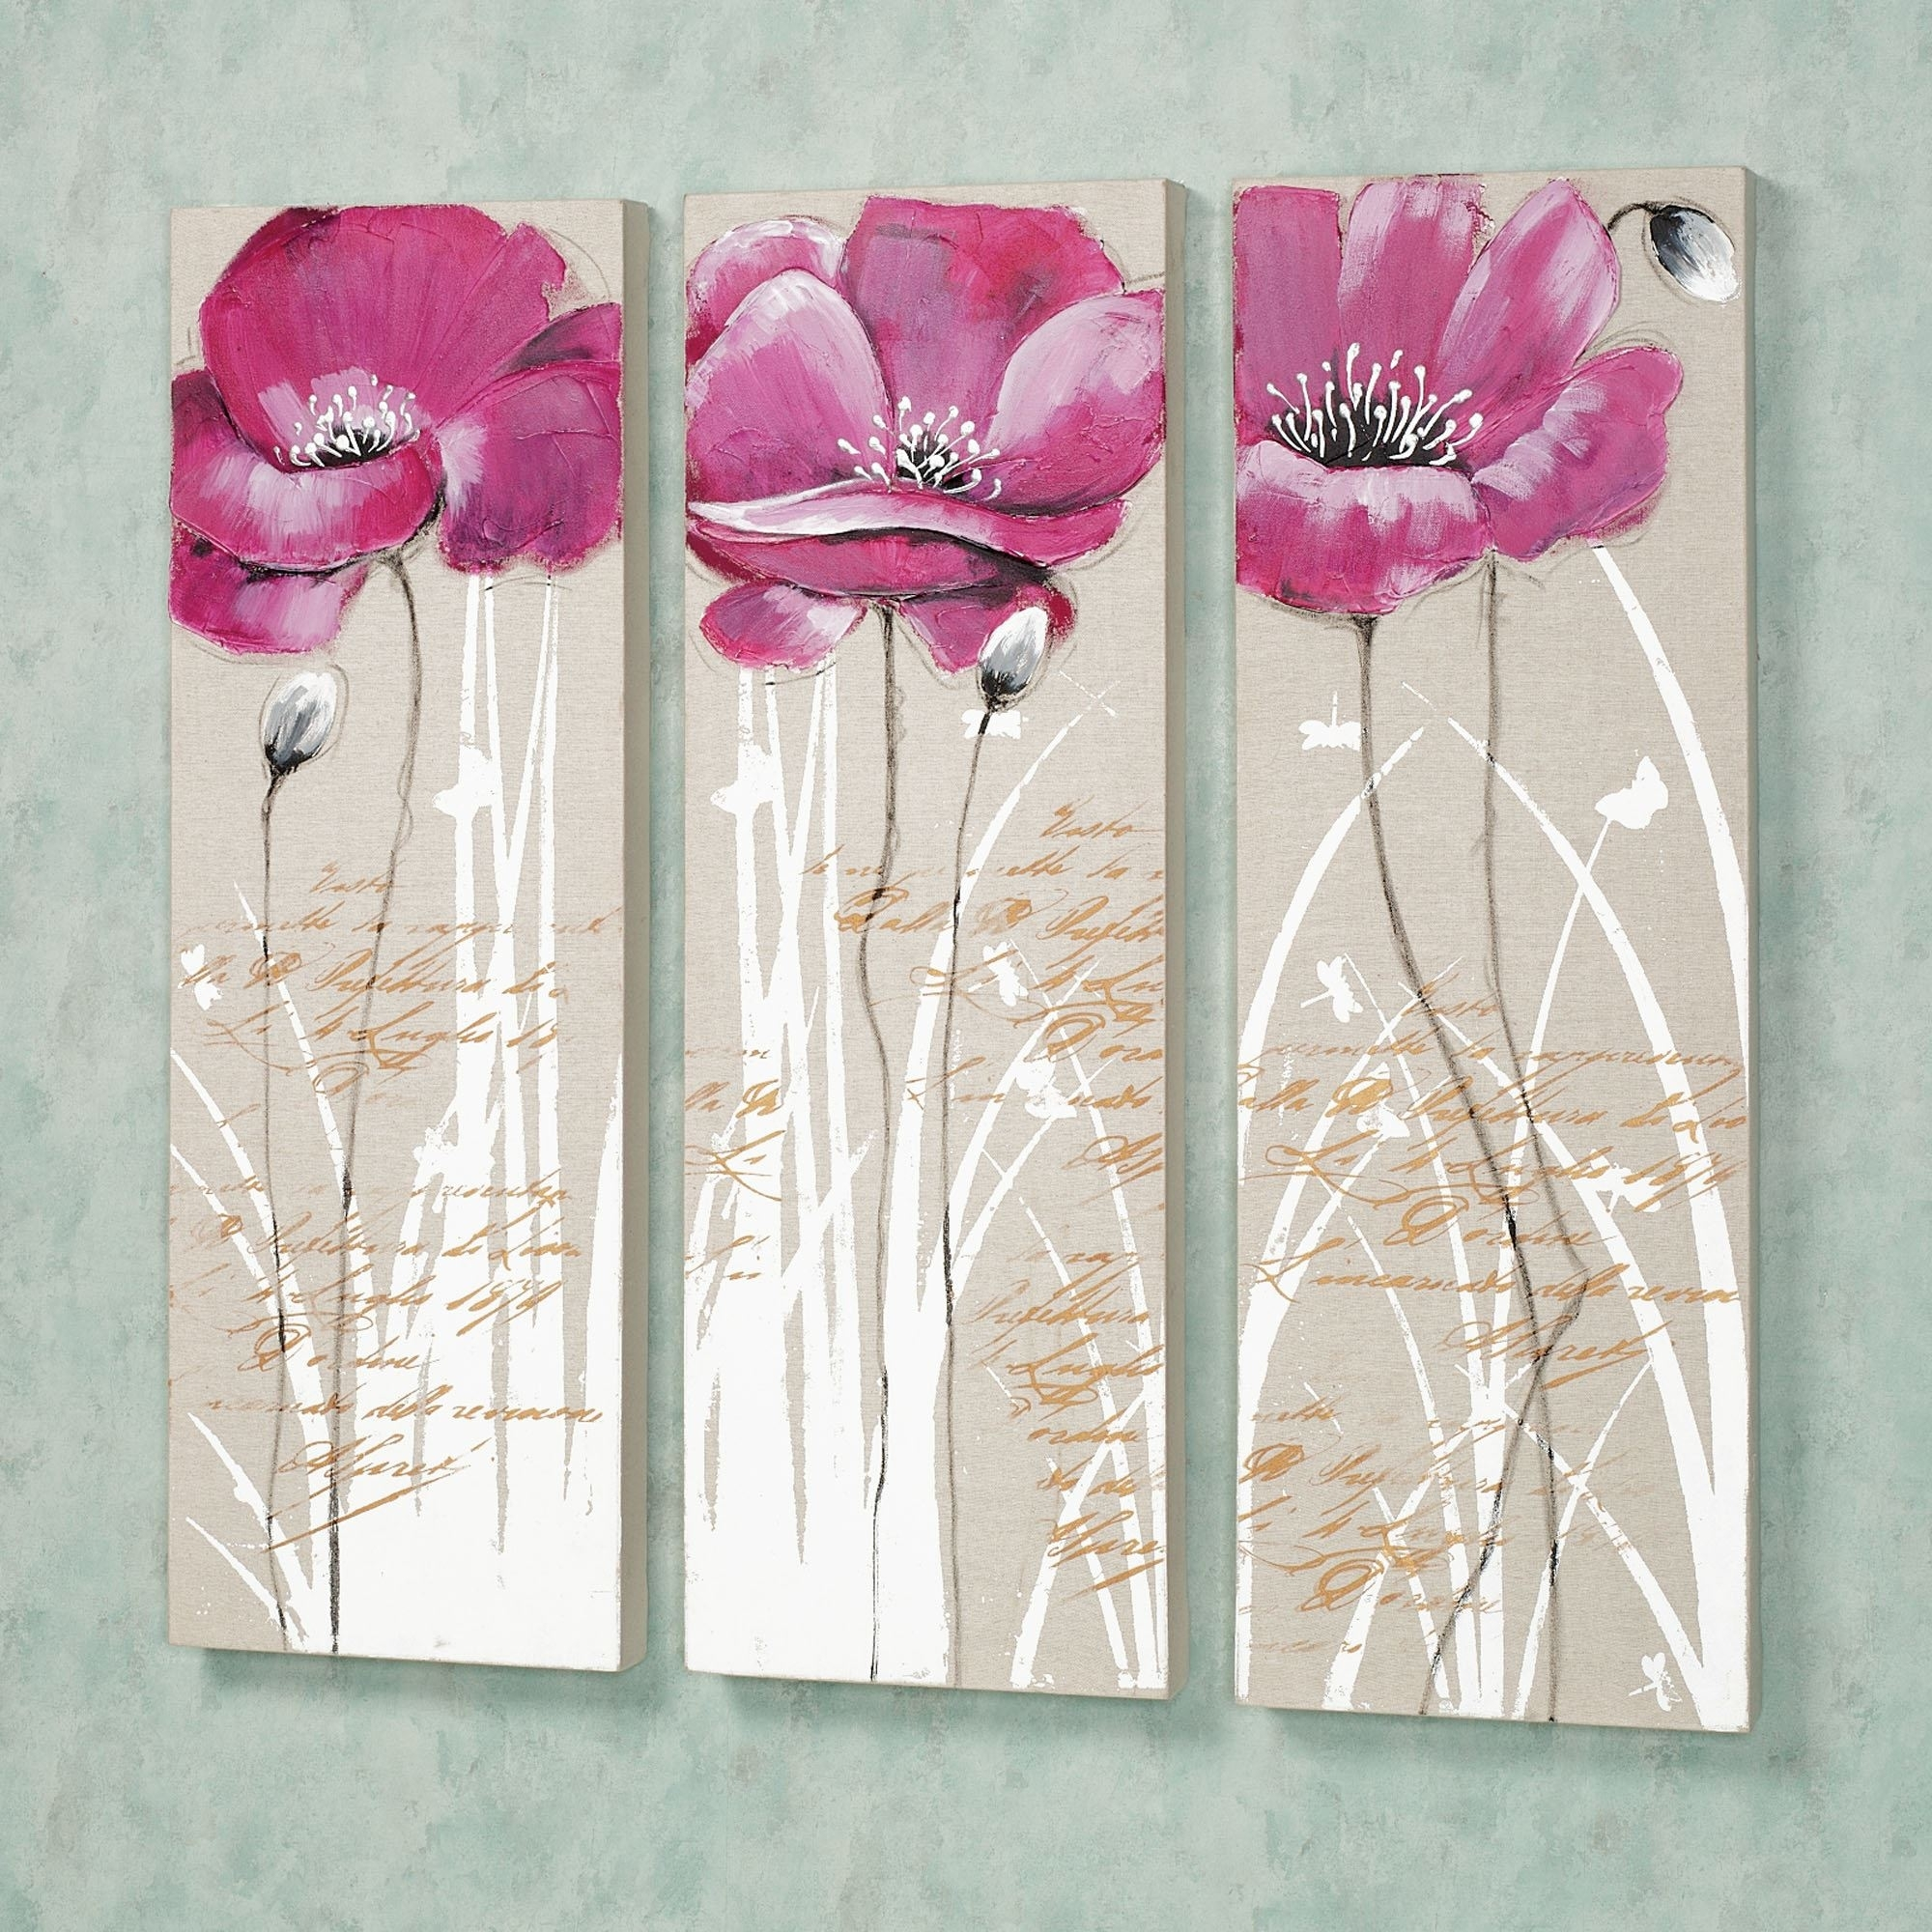 Floral And Botanical Canvas Wall Art | Touch Of Class Within Most Recently Released Pink Canvas Wall Art (Gallery 13 of 15)